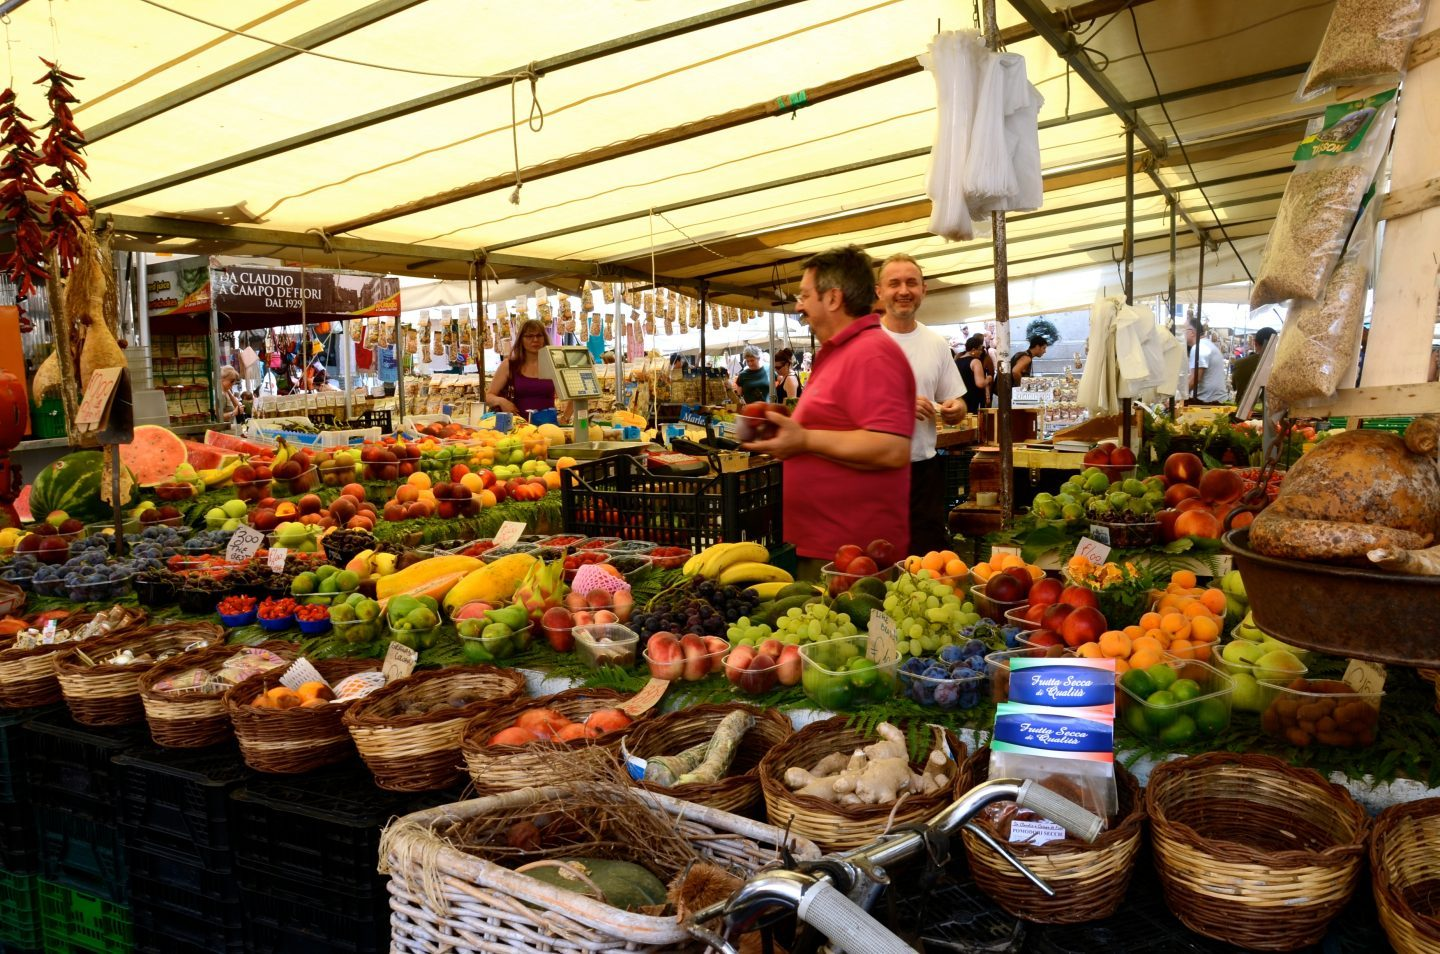 Market at Campo de Fiore in Rome.